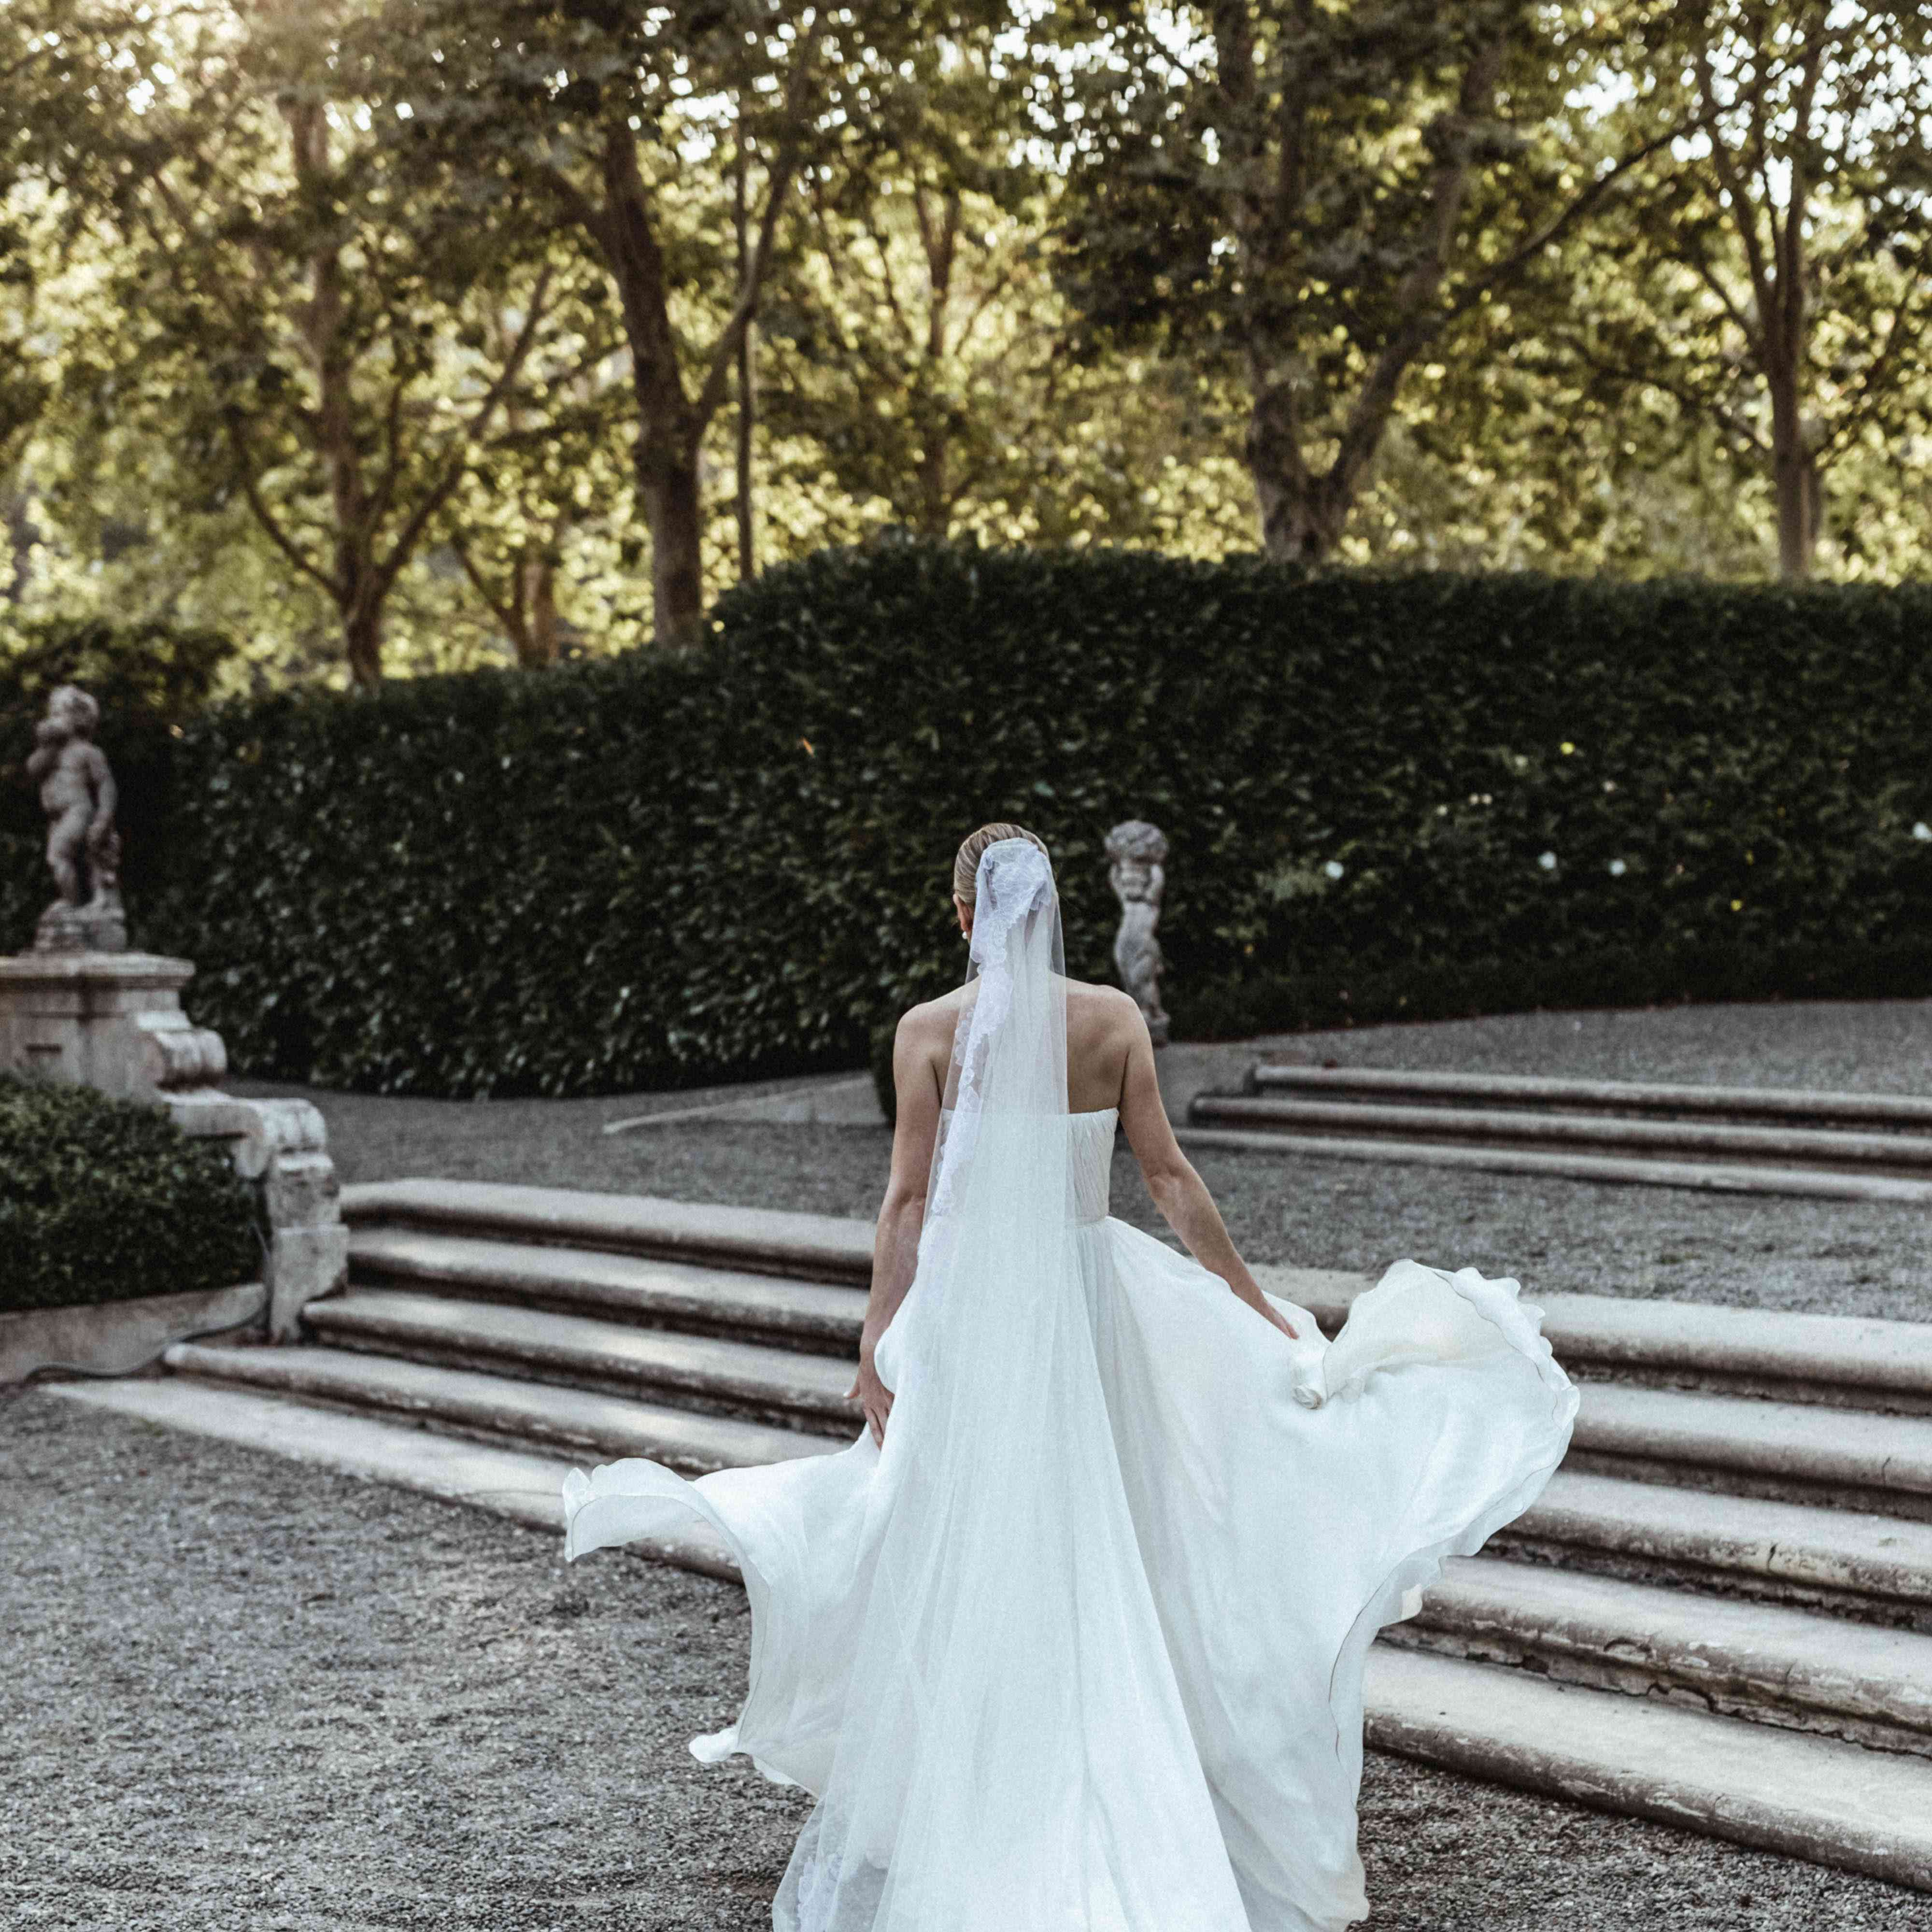 back of bride's dress and veil